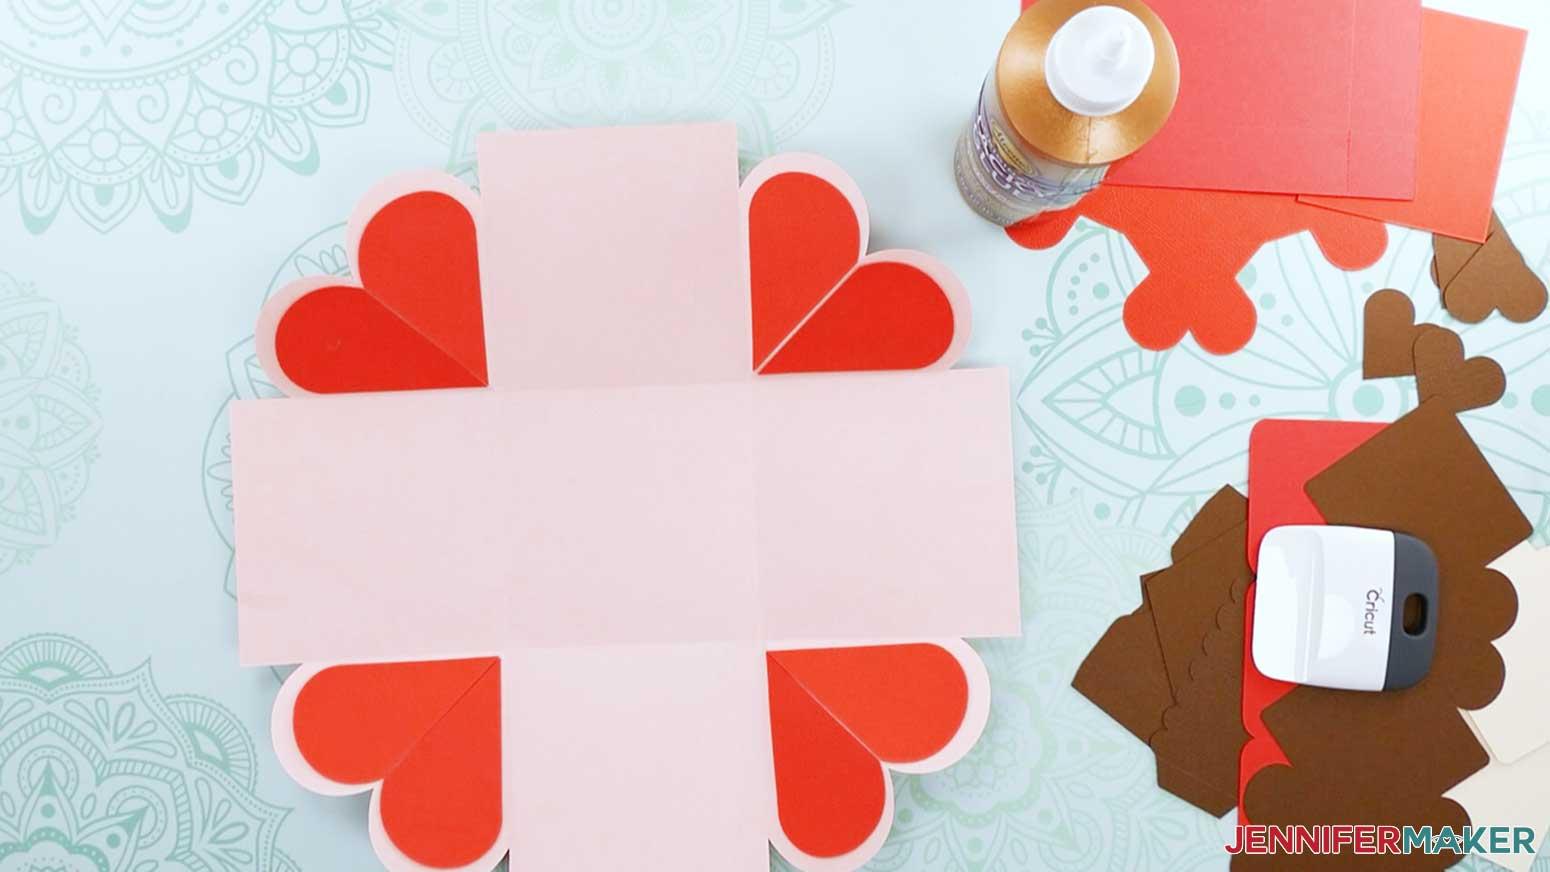 This is what your box one should look like folded and with the hearts glued in the corners for my heart explosion box